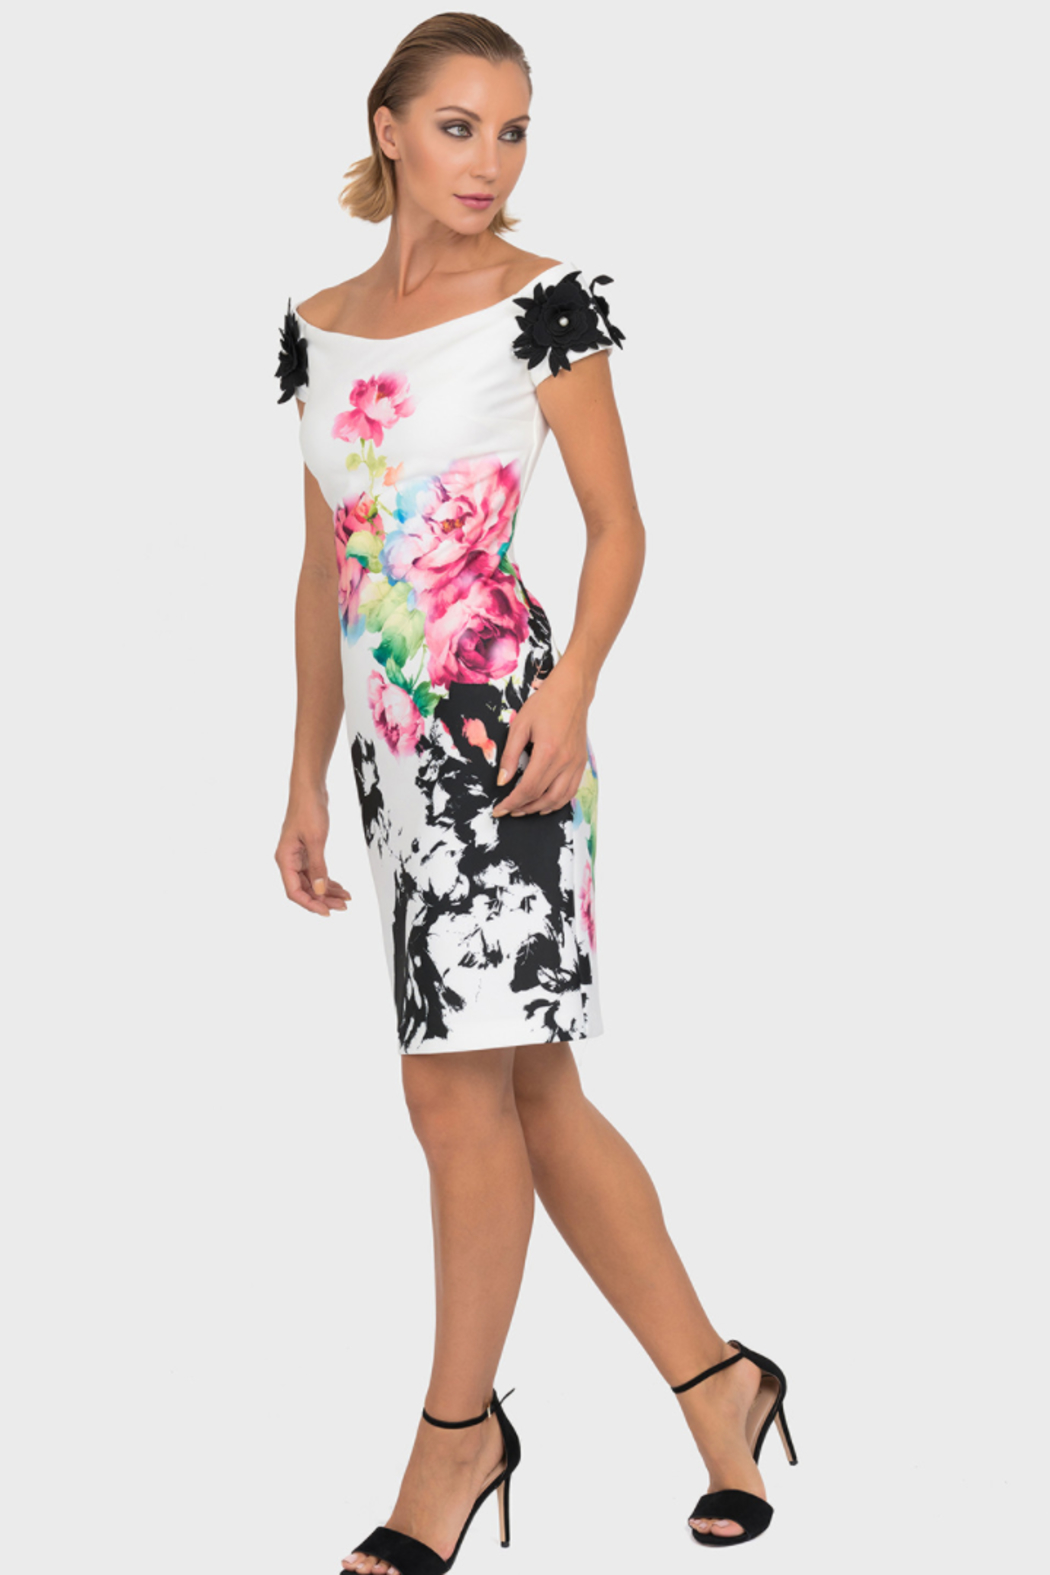 Joseph Ribkoff Multiple Foral Patterns Dress - Main Image